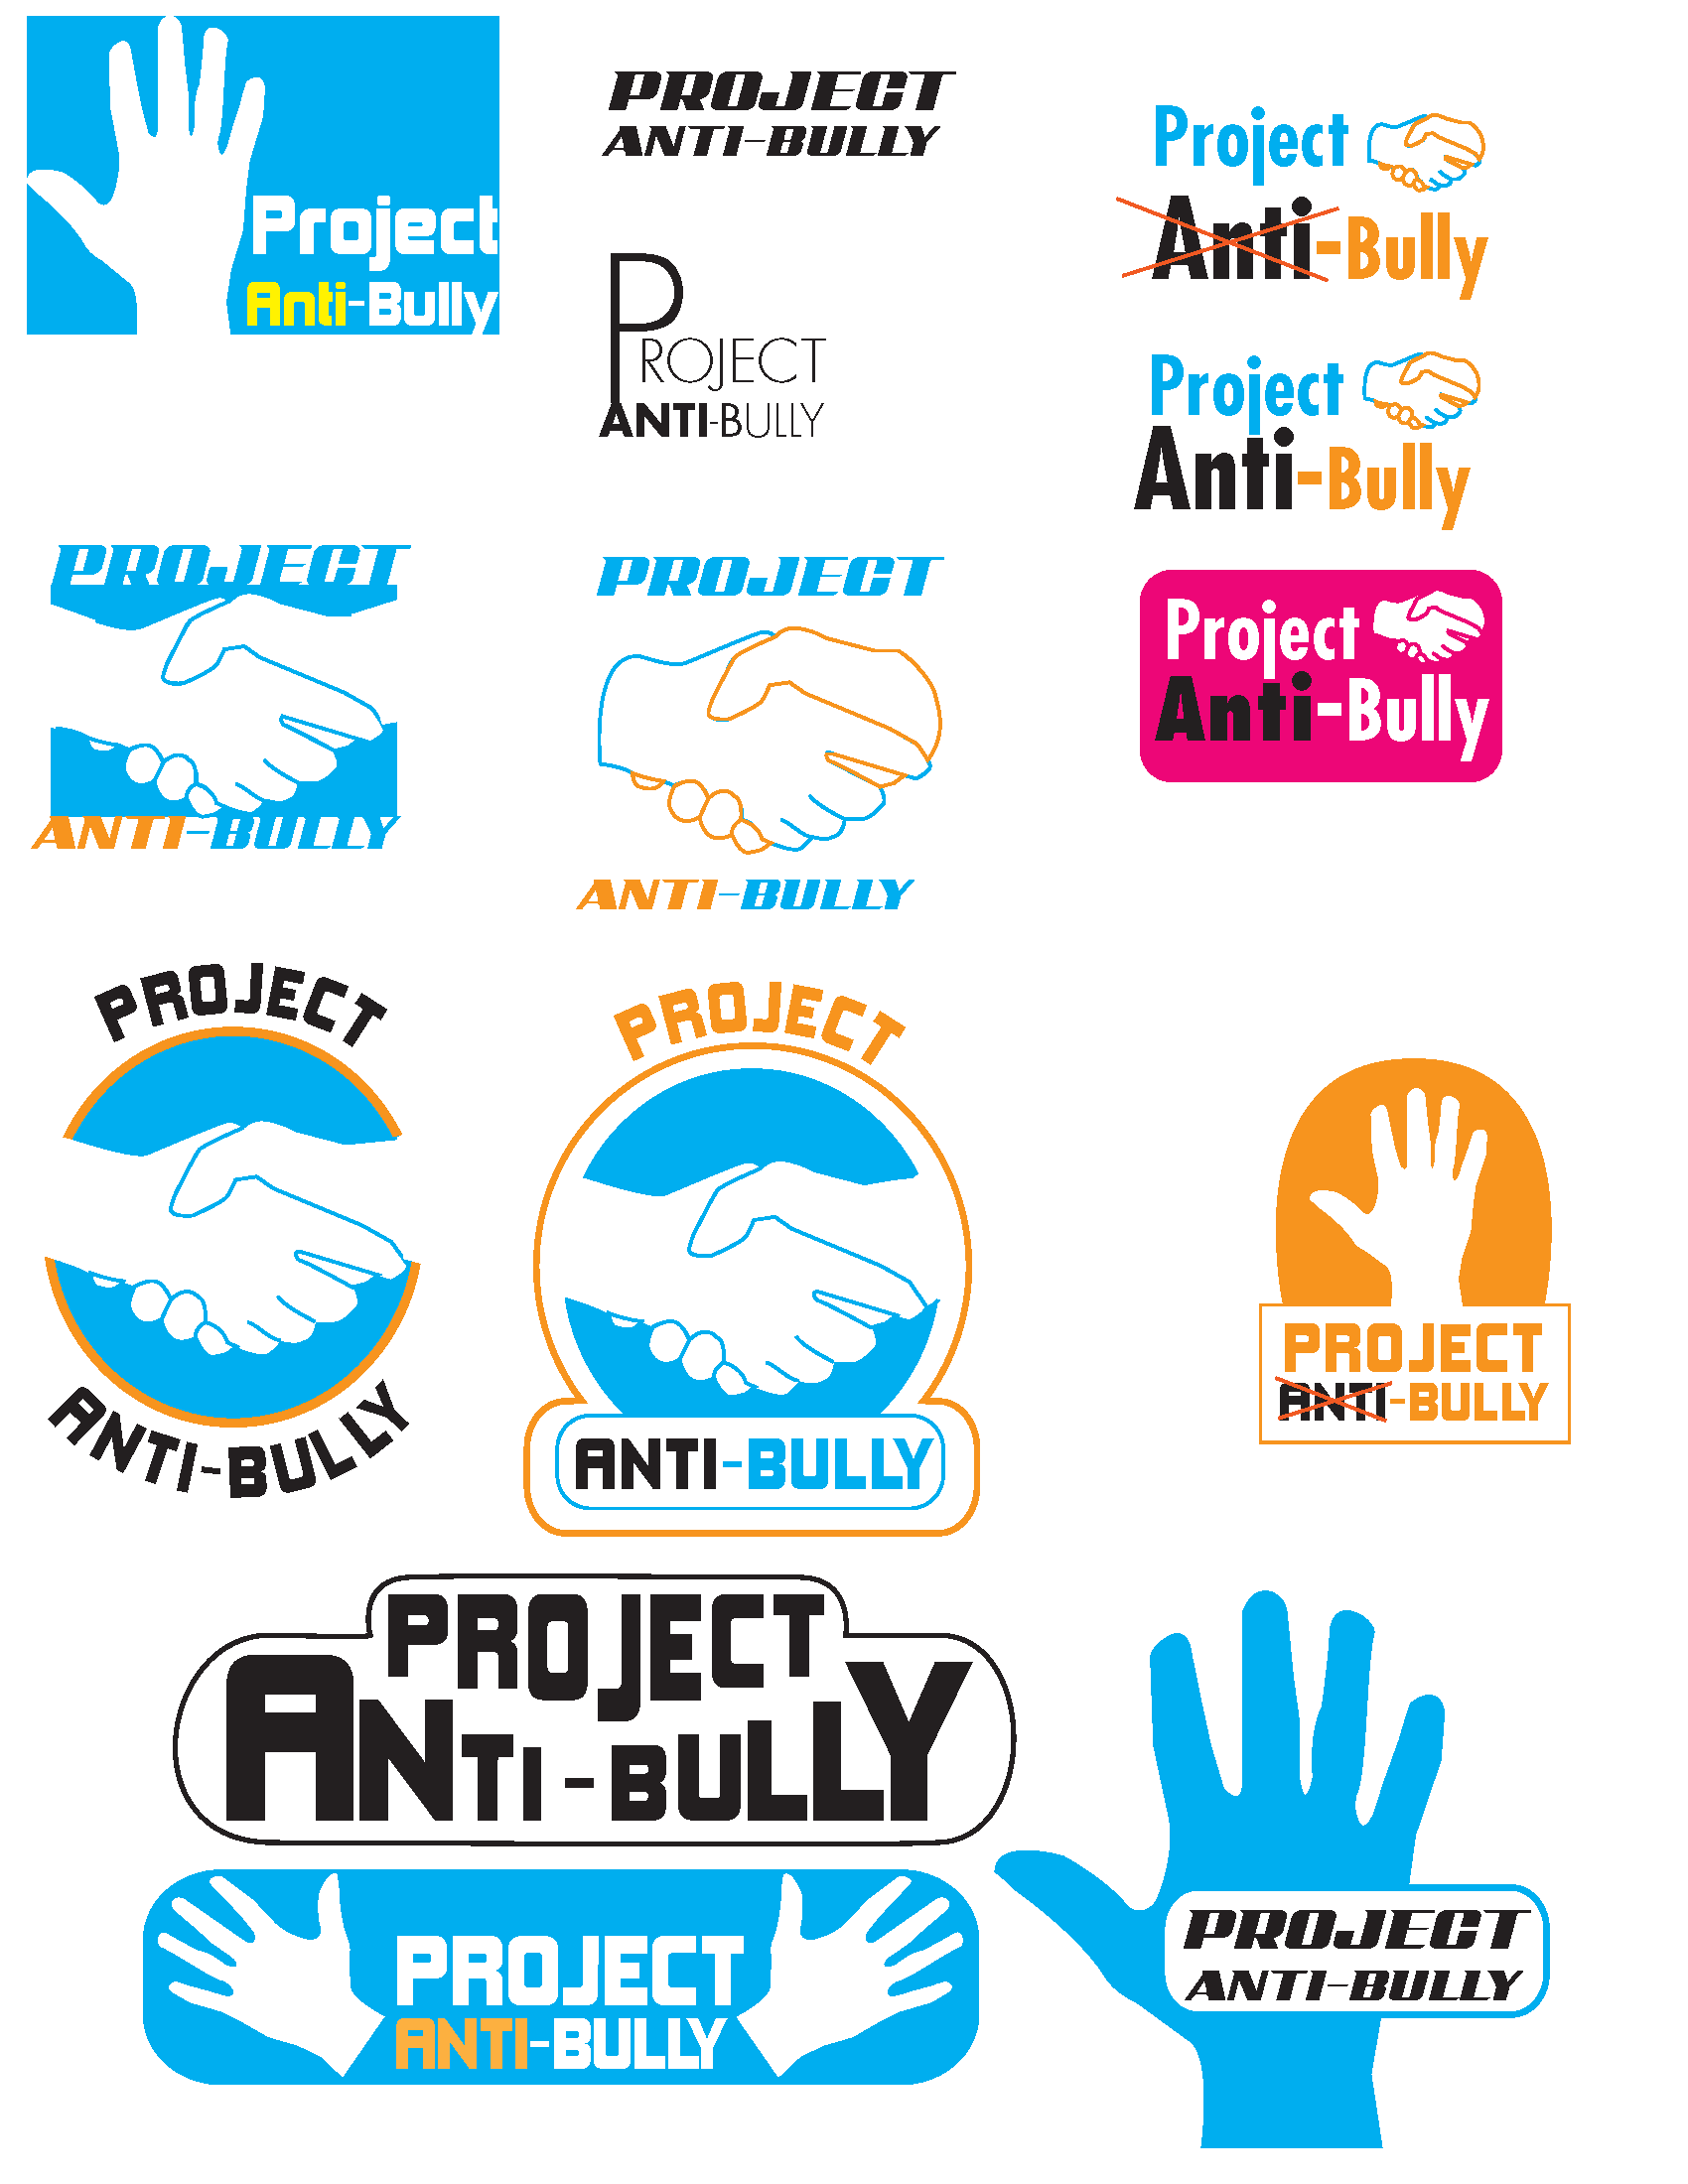 New Project Anti Bully Pab Logo Ideas